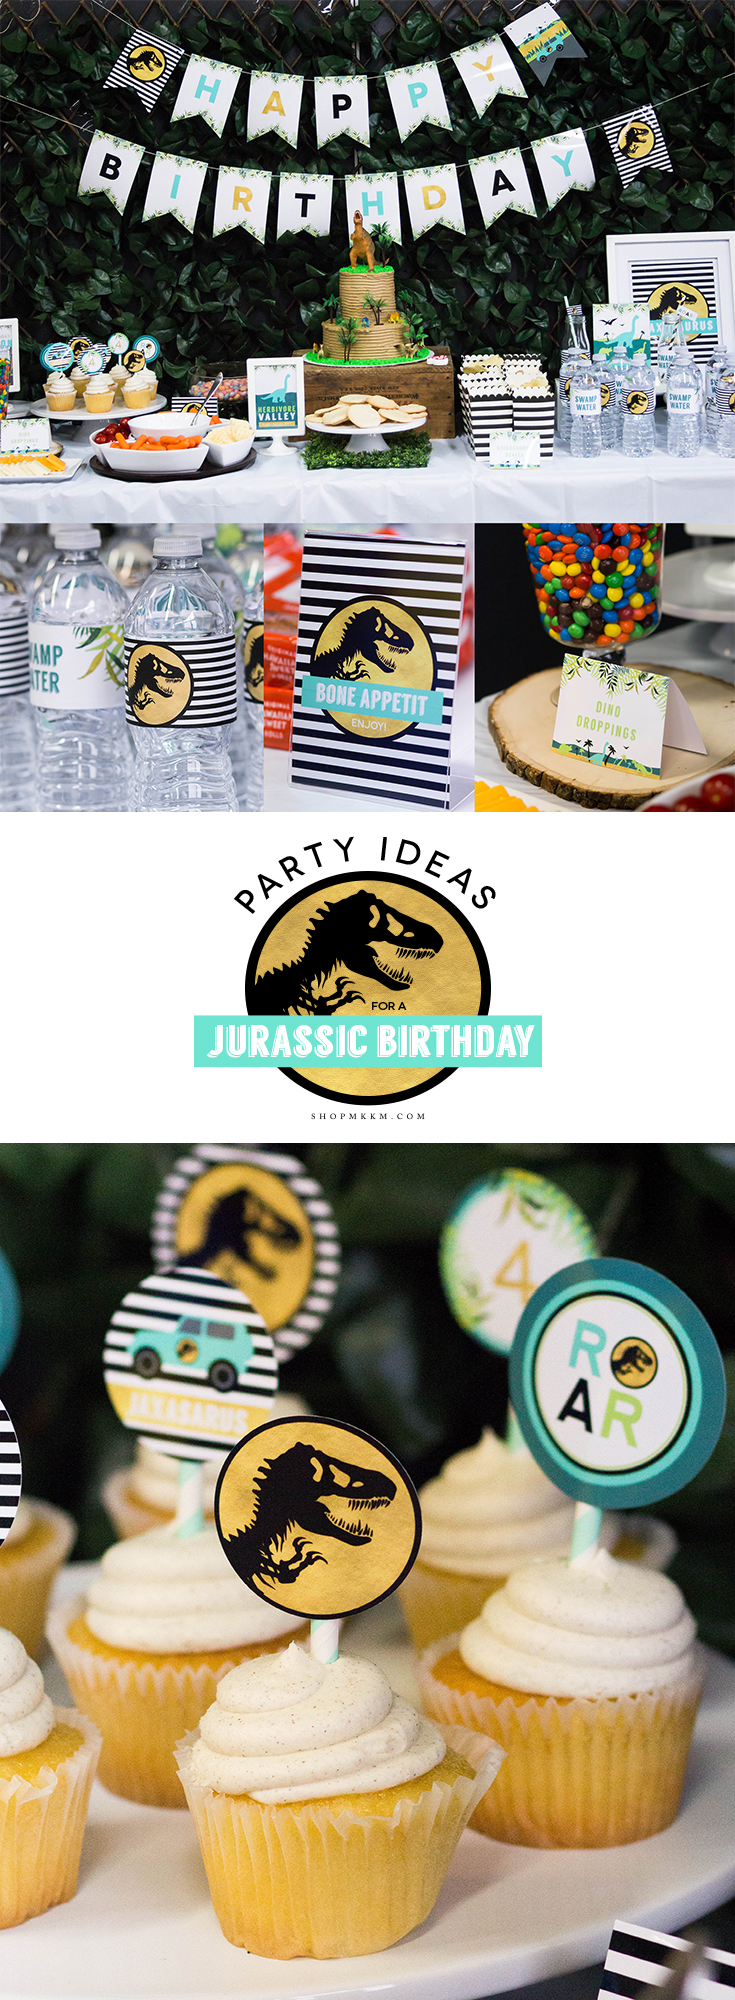 Party ideas and free printable for a Jurassic Park inspired birthday party. // mkkmdesigns